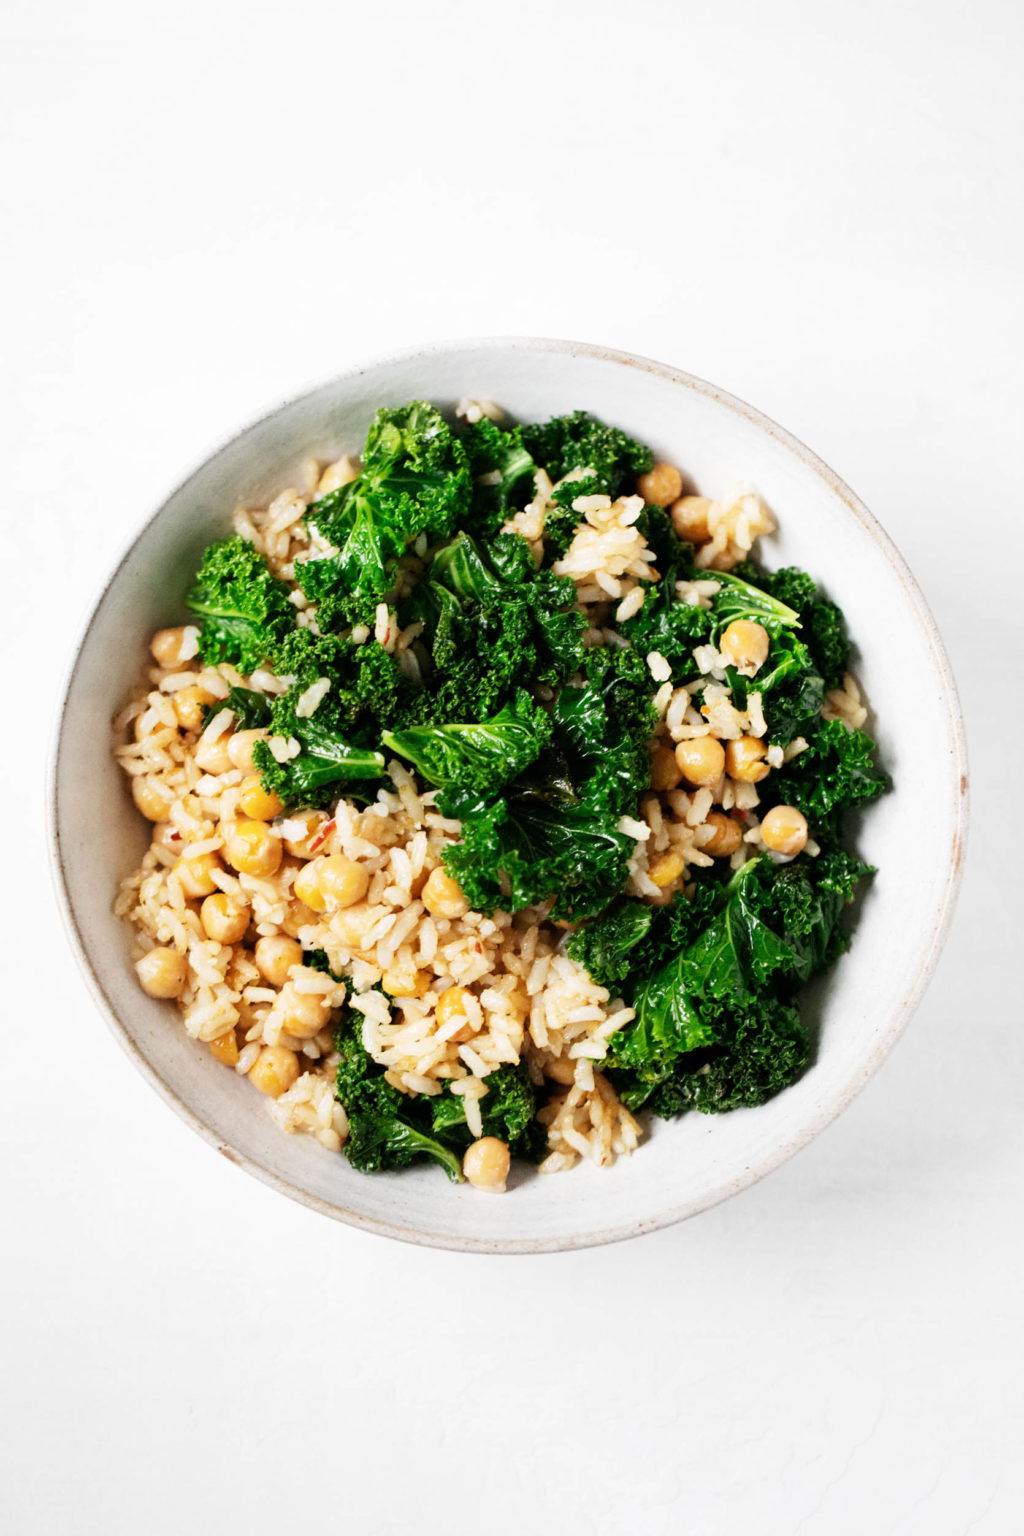 An overhead photograph of a bowl containing brown rice, greens, and chickpeas.